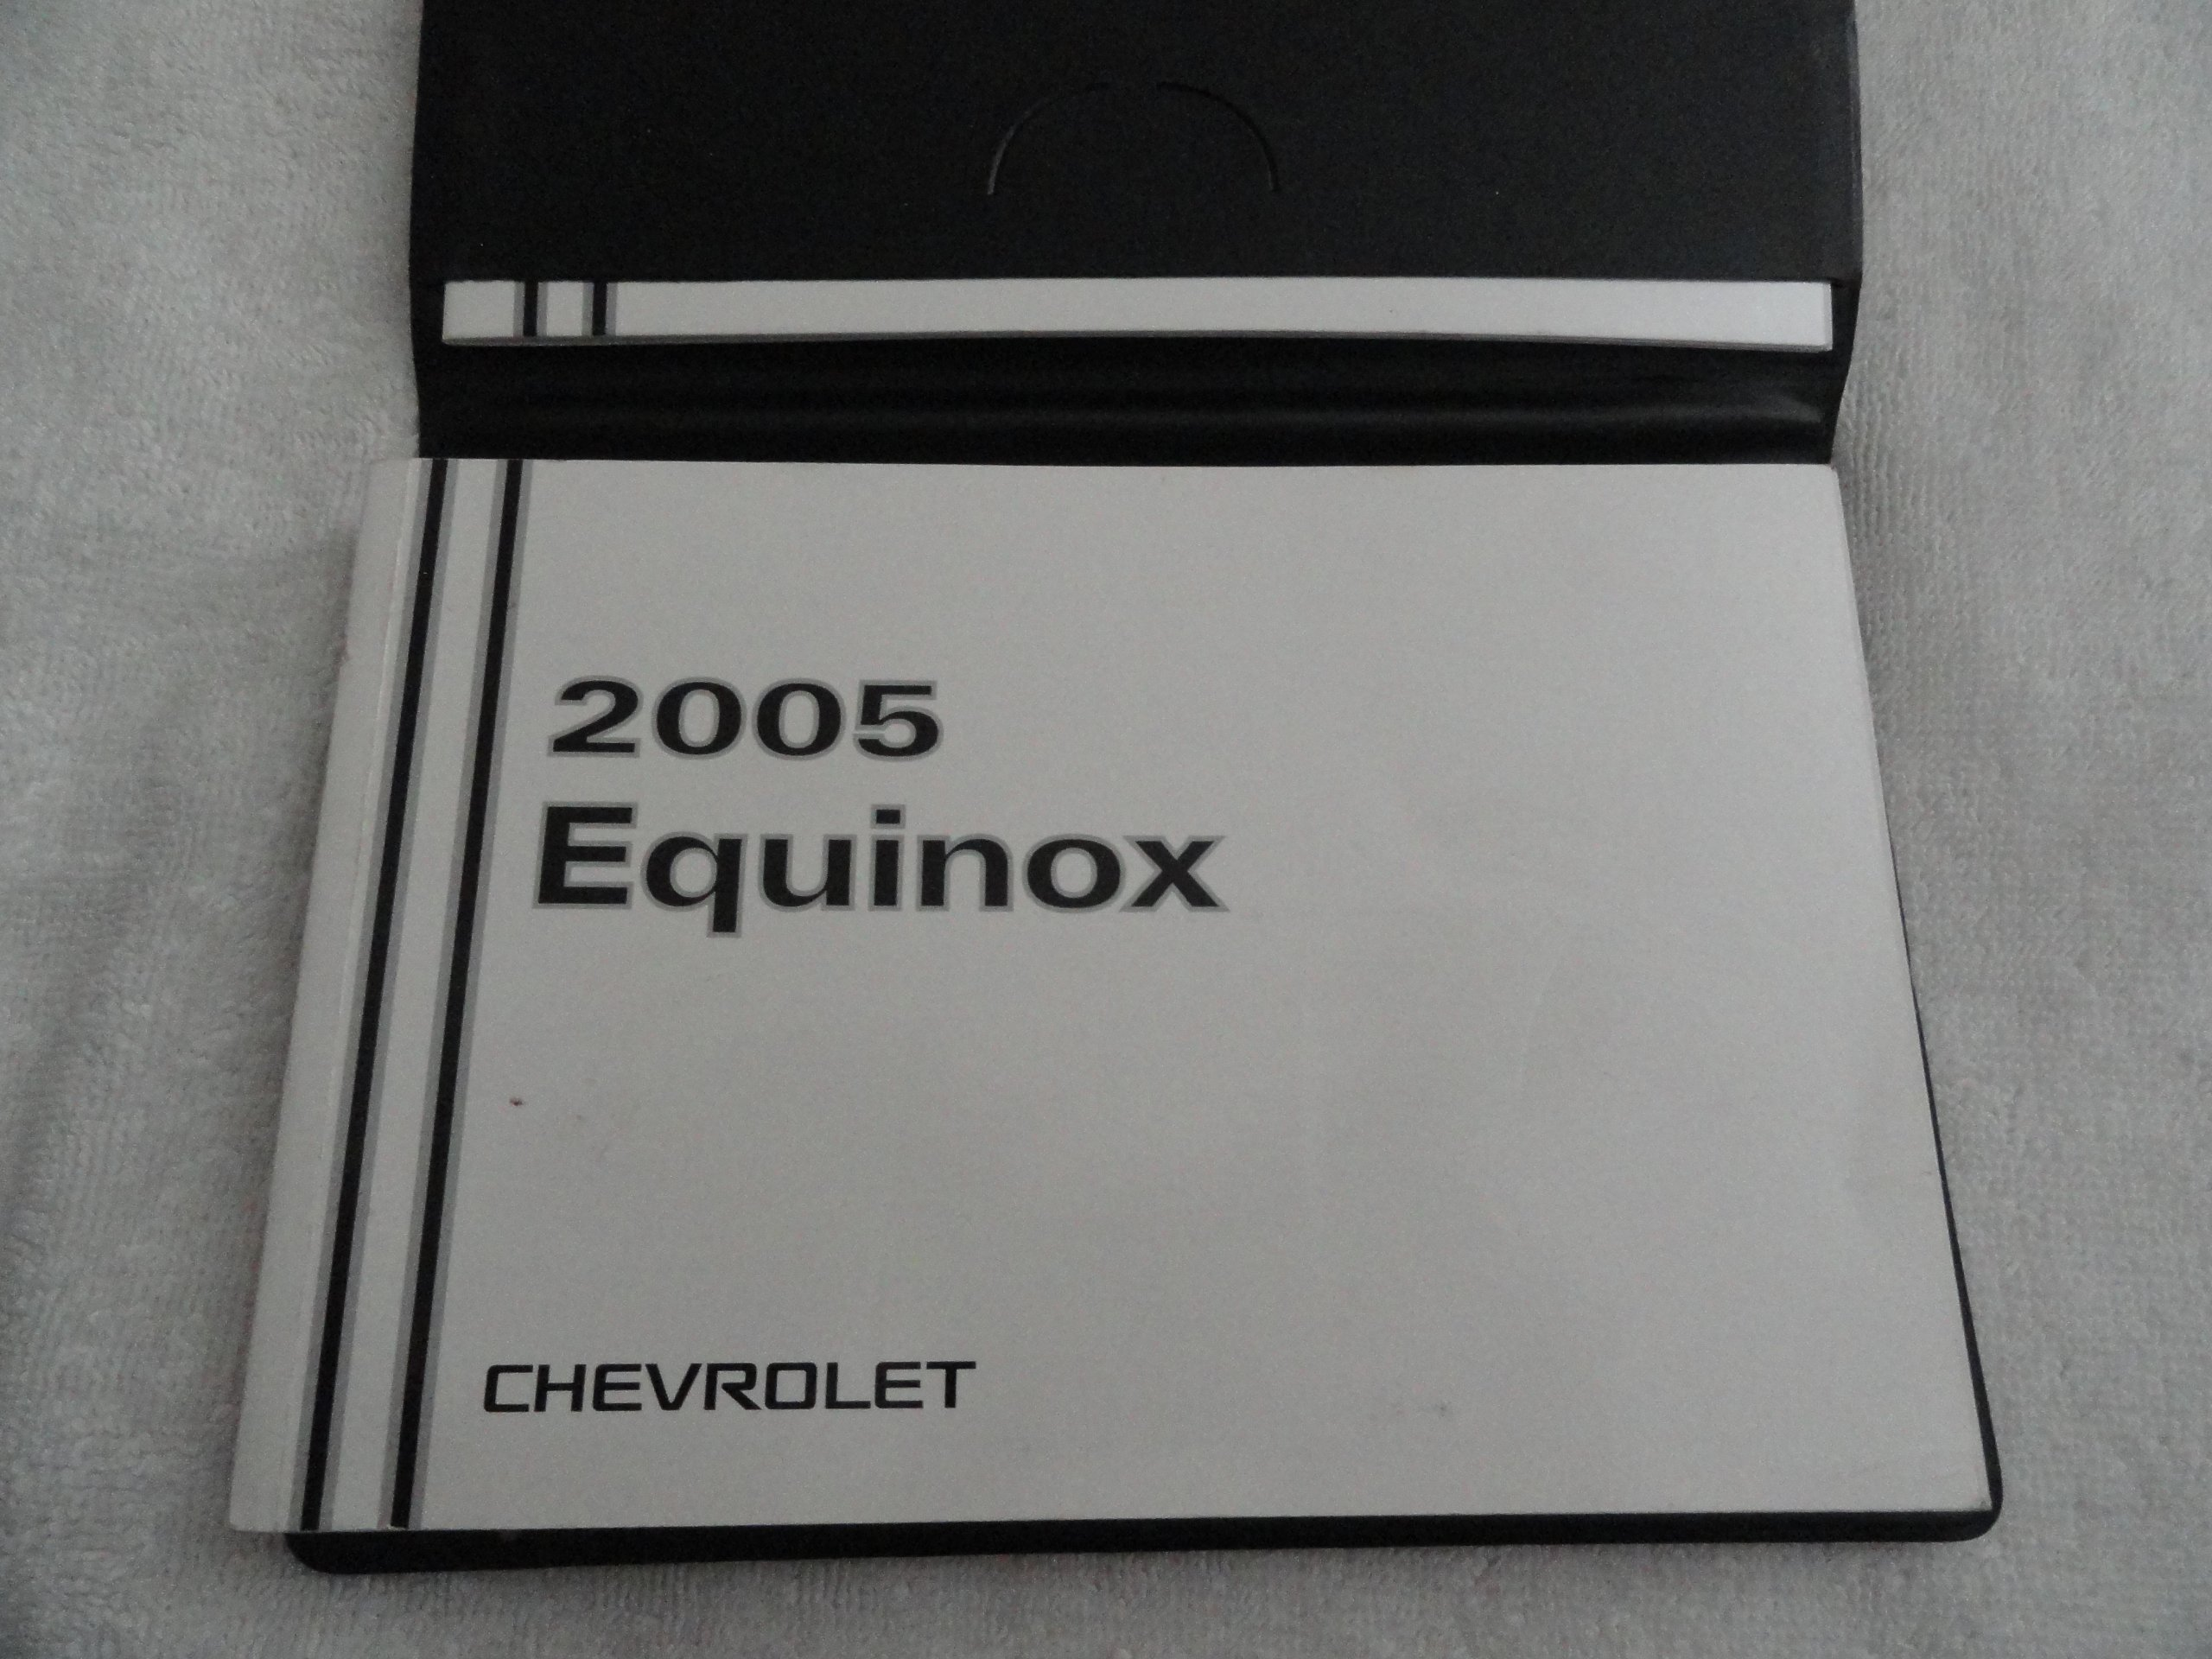 2005 chevy chevrolet equinox owners manual chevrolet amazon com books rh amazon com 2005 chevy equinox parts manual 2005 chevy equinox service manual pdf